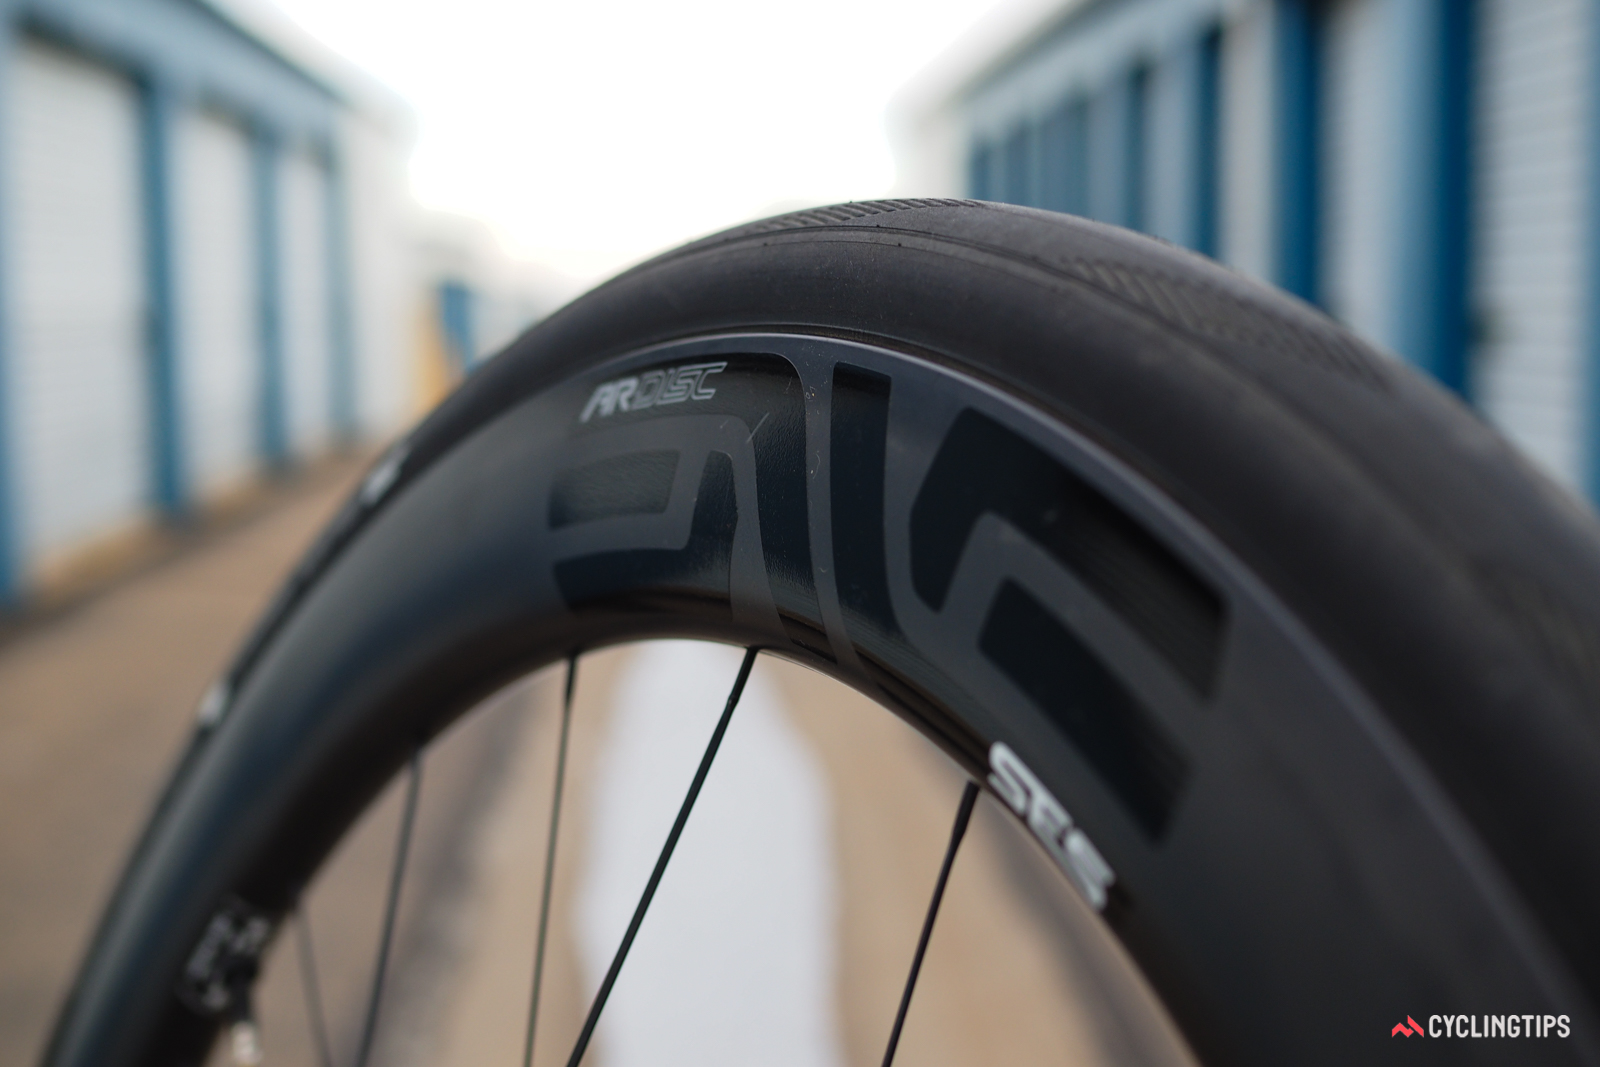 The bulbous profile measures 31mm at its widest point, blending perfectly with higher-volume tires that normally create more of an lightbulb-like cross-section when mounted on rims of more conventional width.